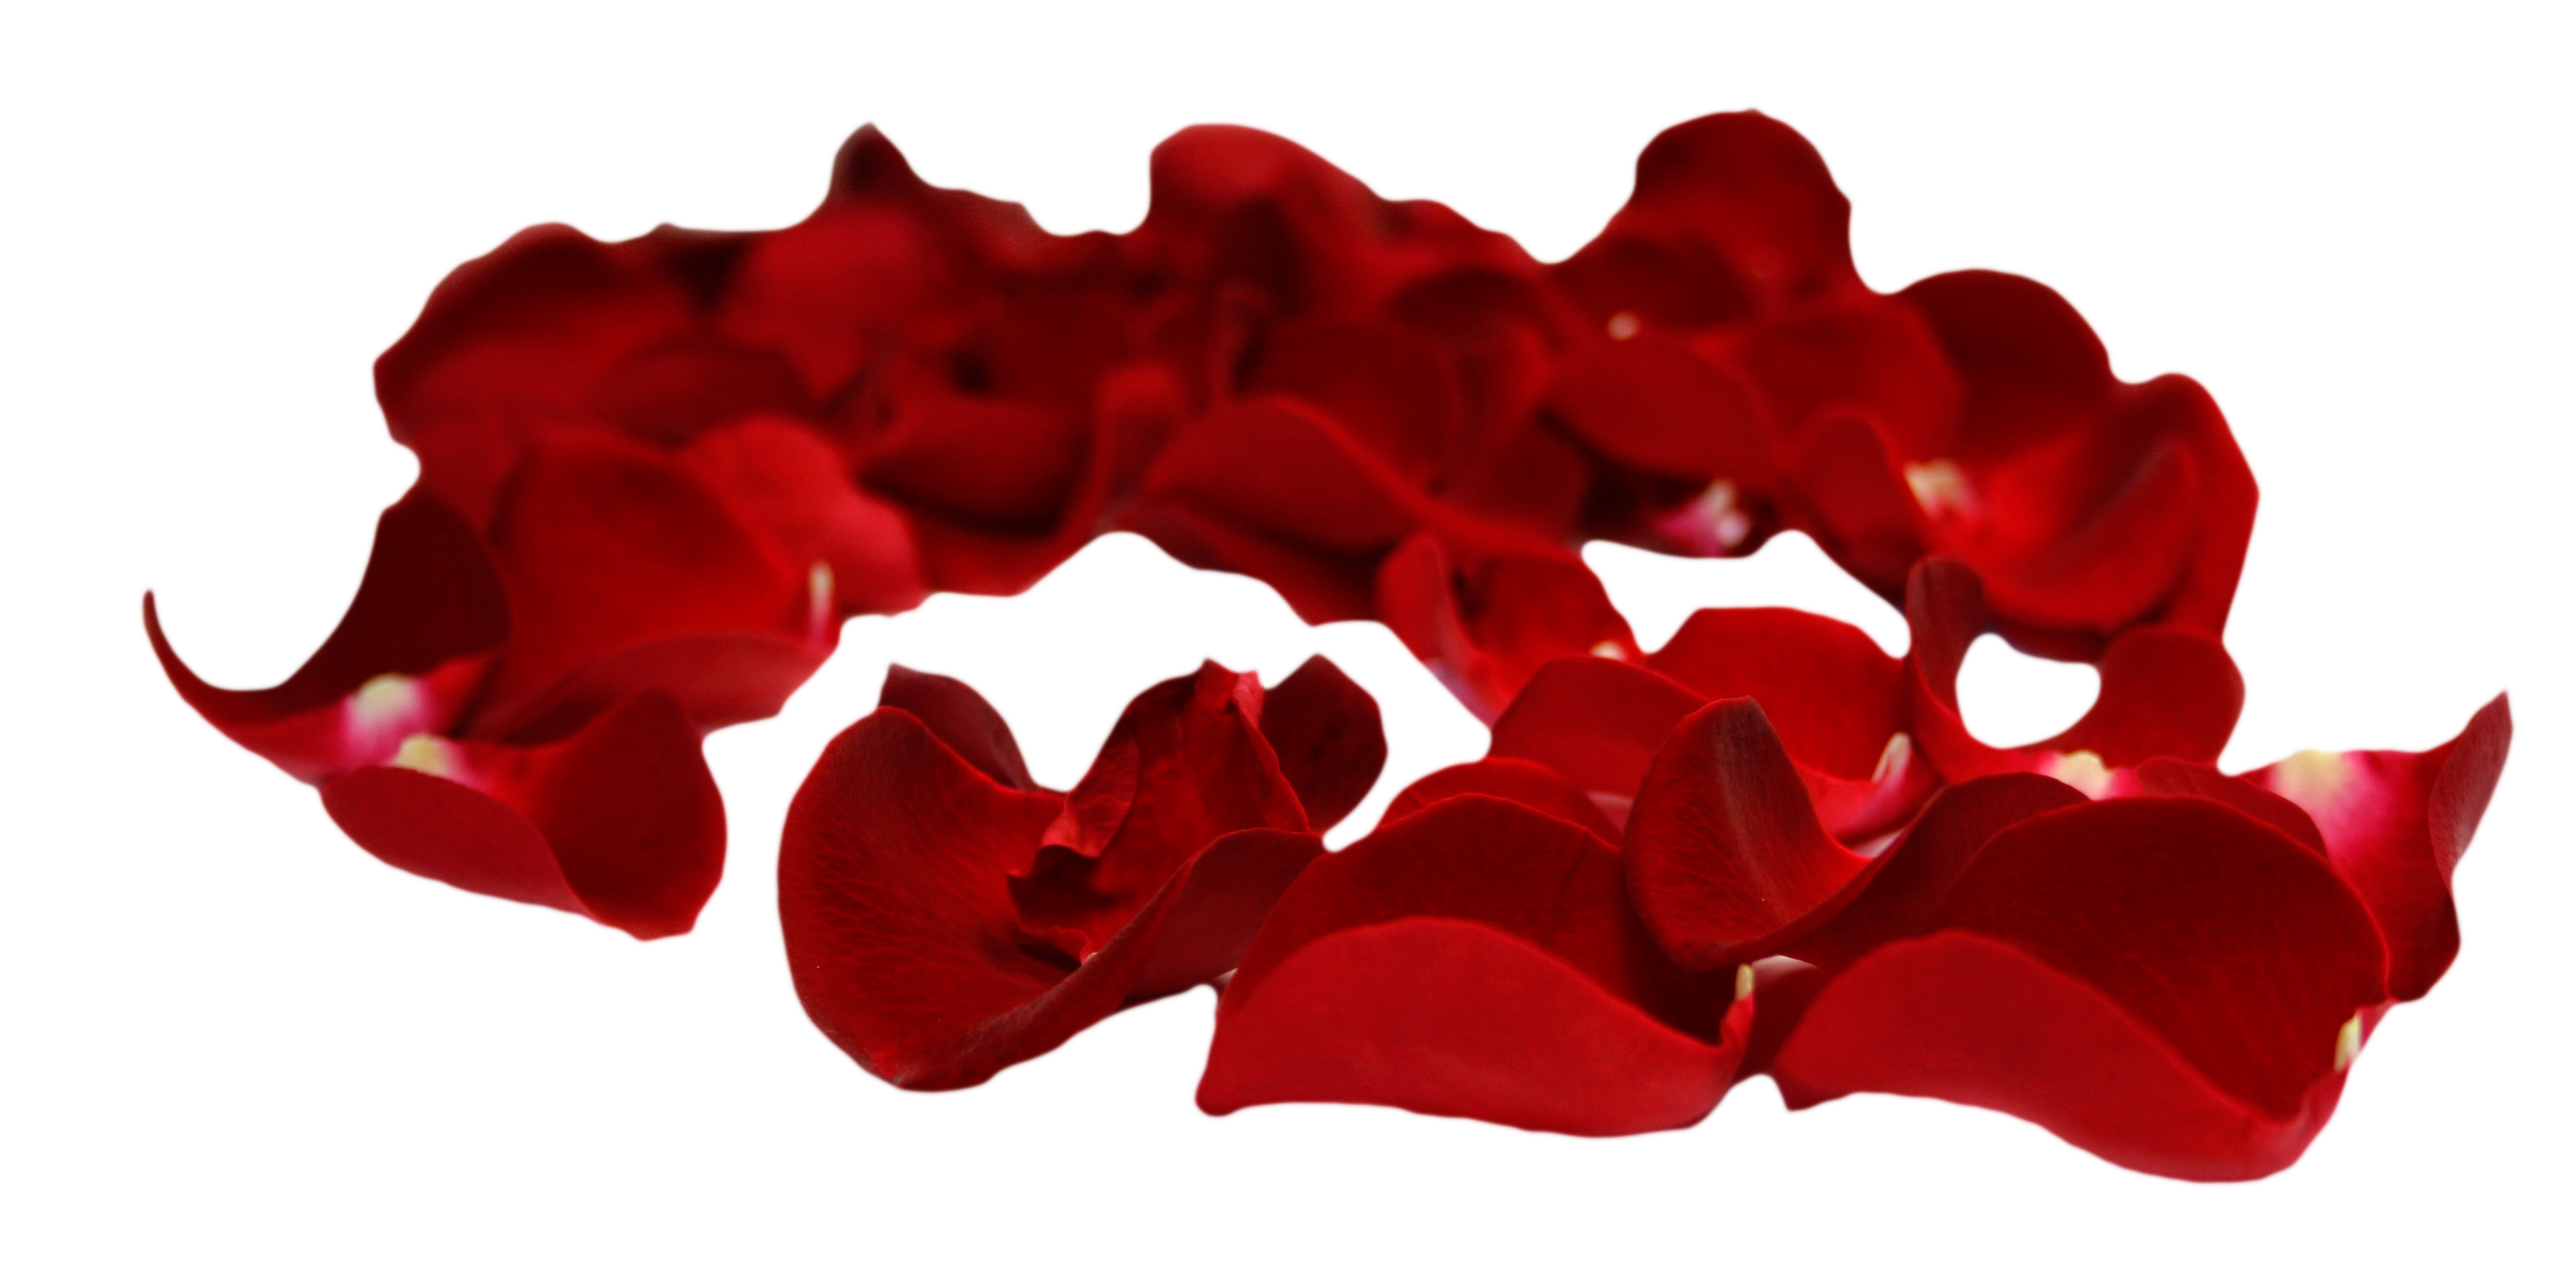 Rose with petals falling png. Psd transparent background imges